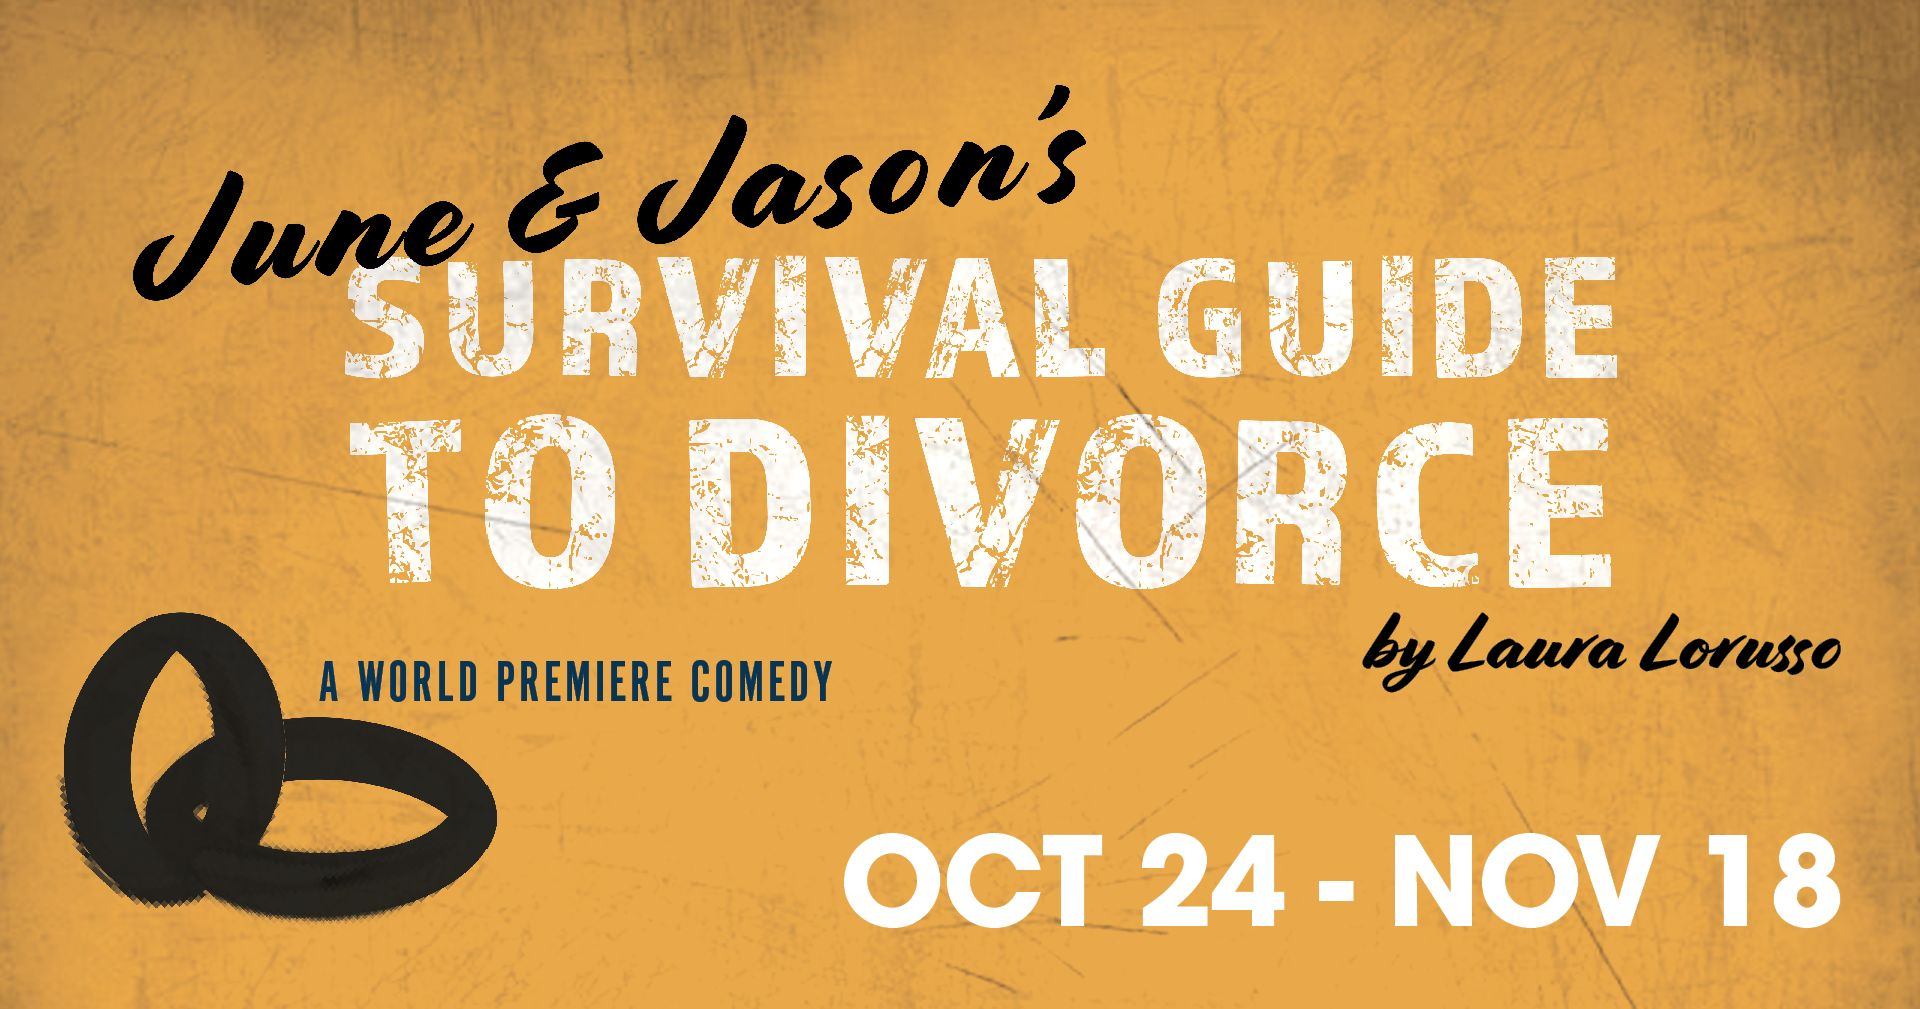 tnp announces cast for june jason s survival guide to divorce